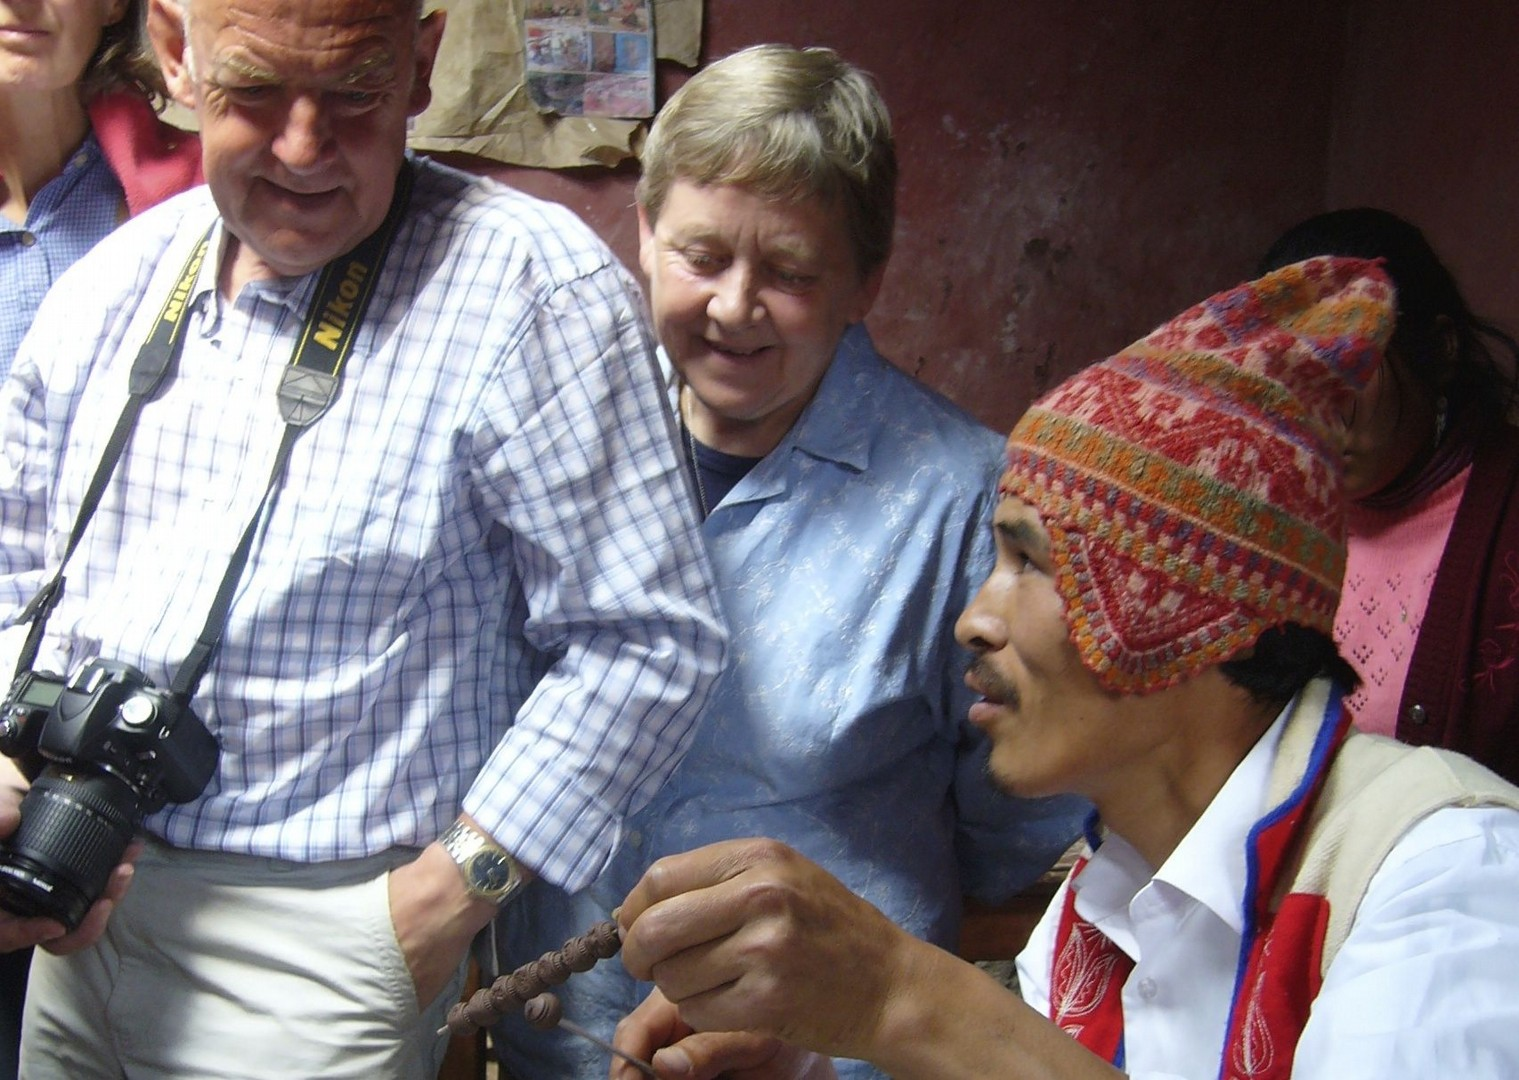 Meeting People.jpg - Peru - Meet the People Tours